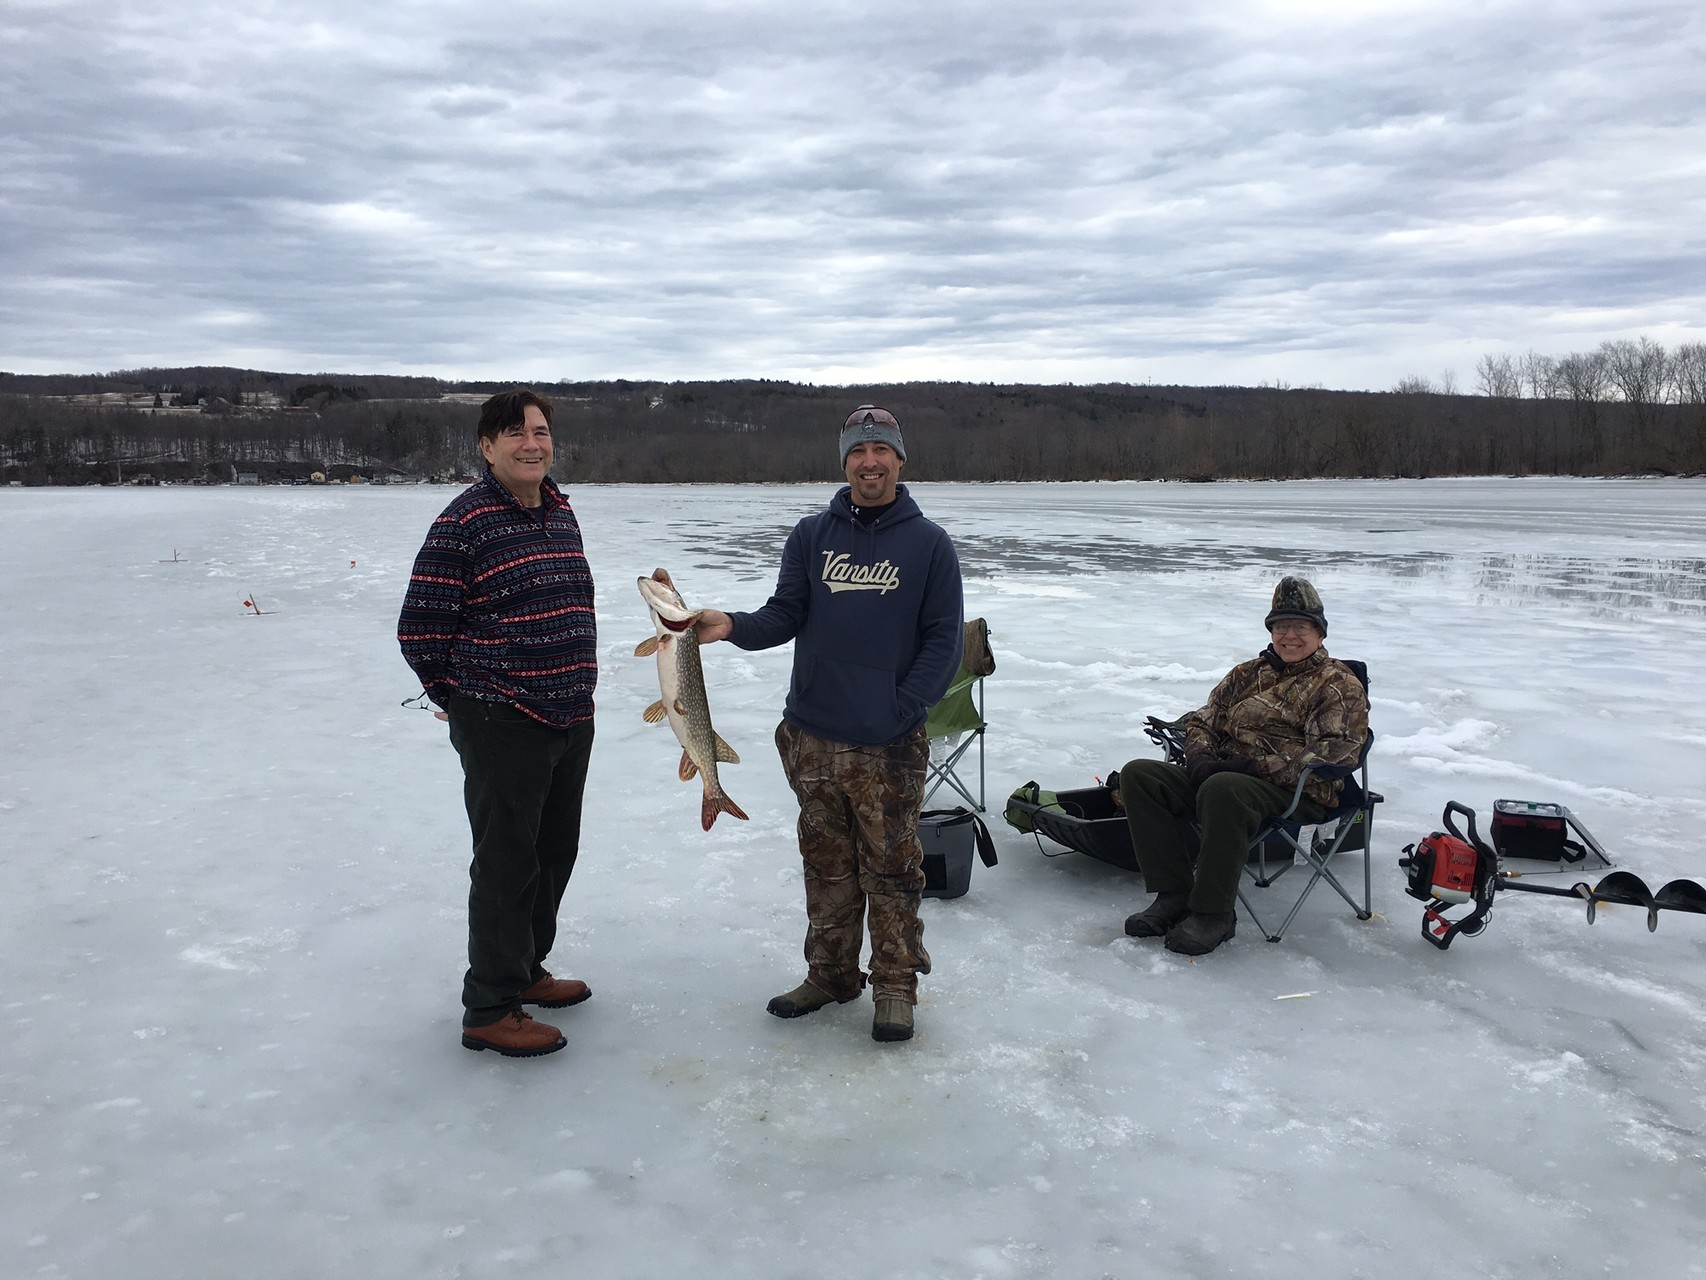 John & ice fishermen on Owasco Lake, Feb. 20, 2016